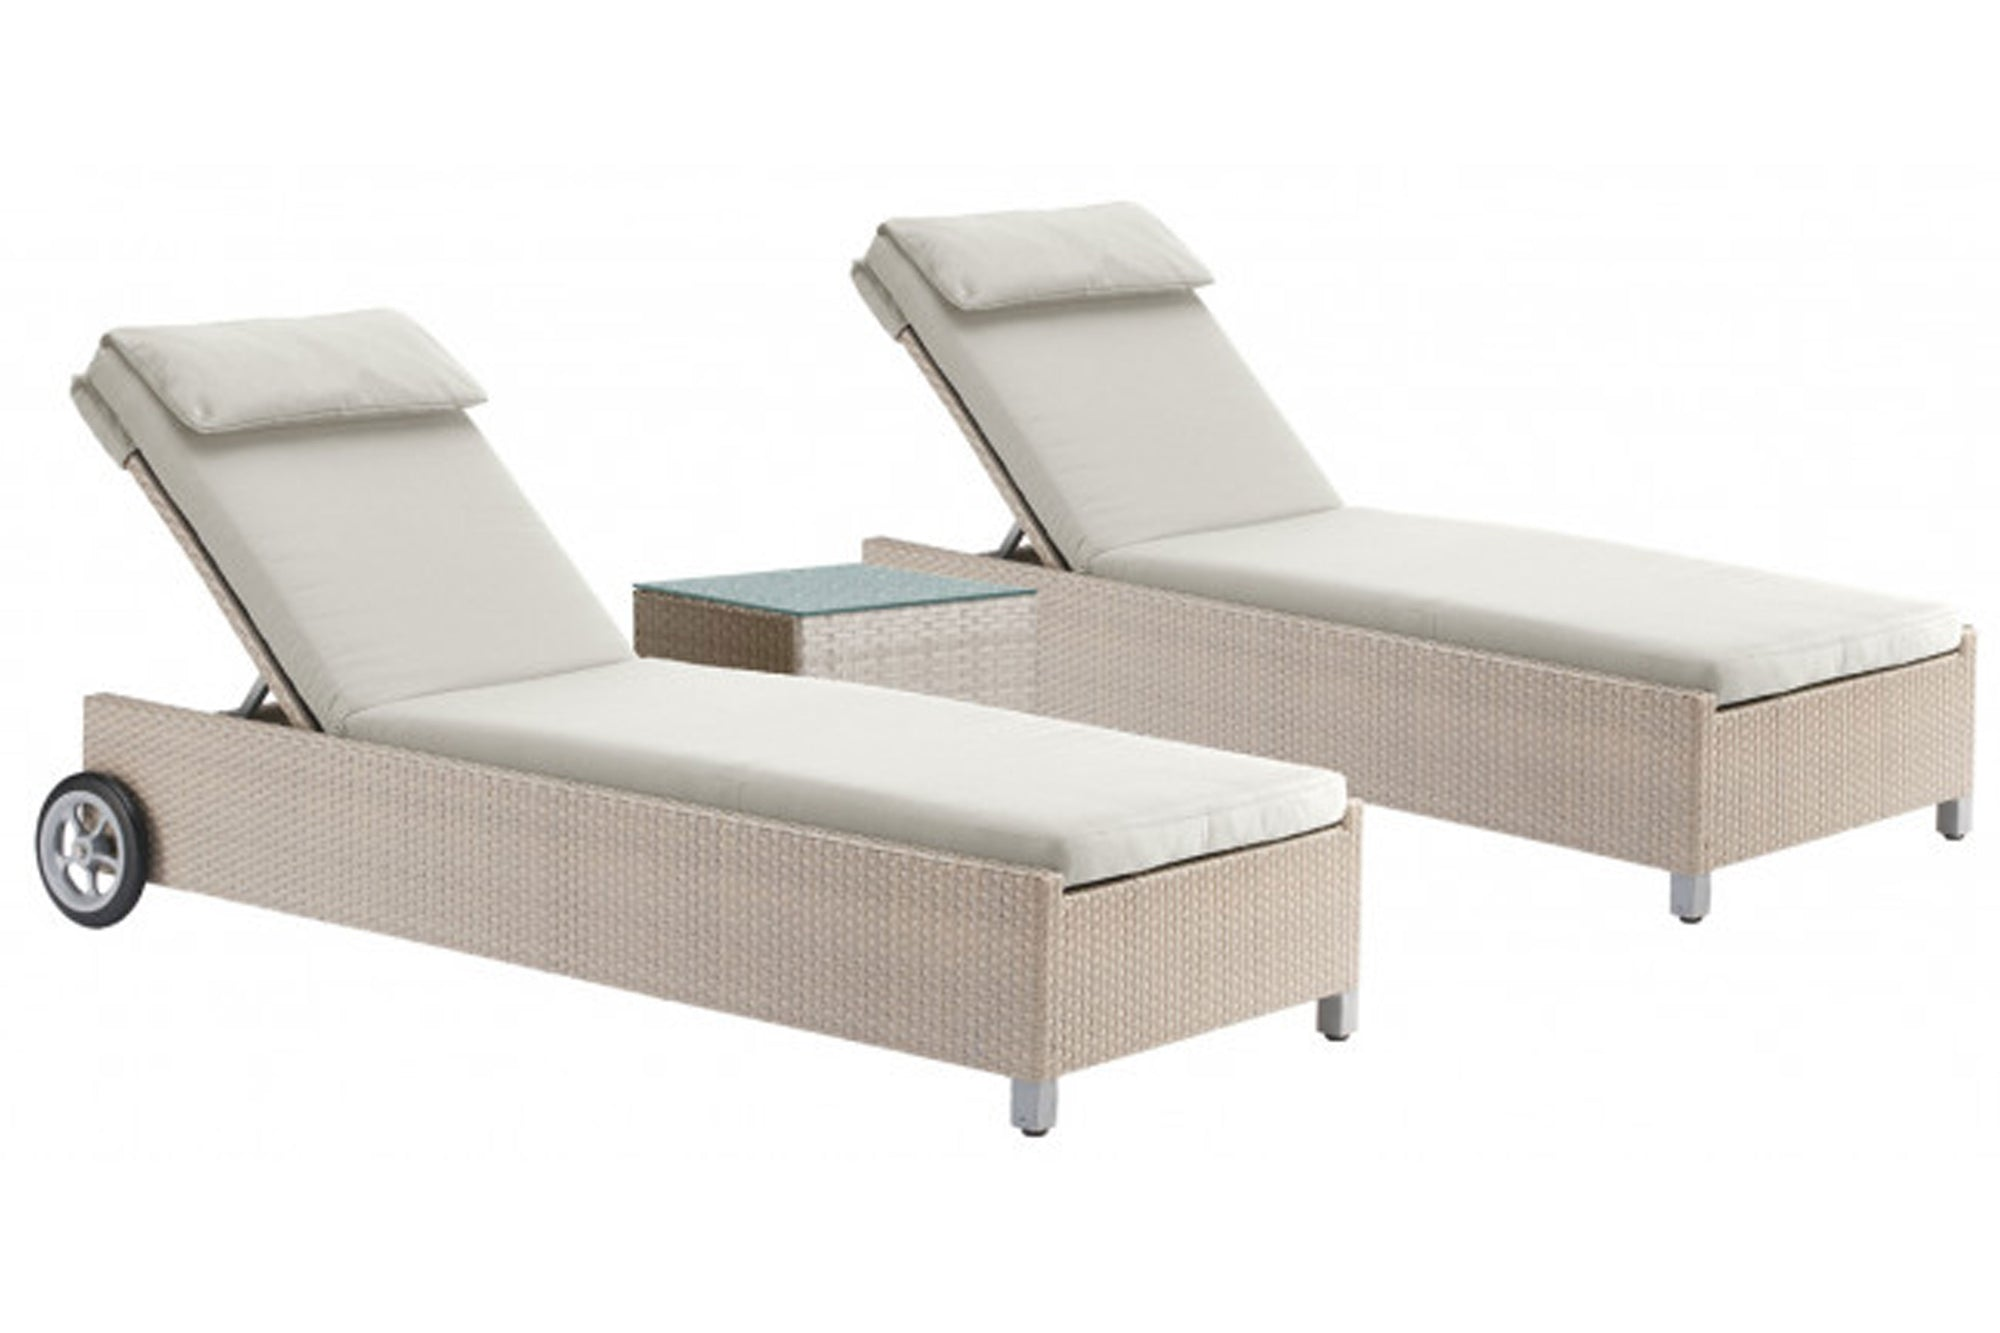 Cubix 3 PC Chaise Lounge Set